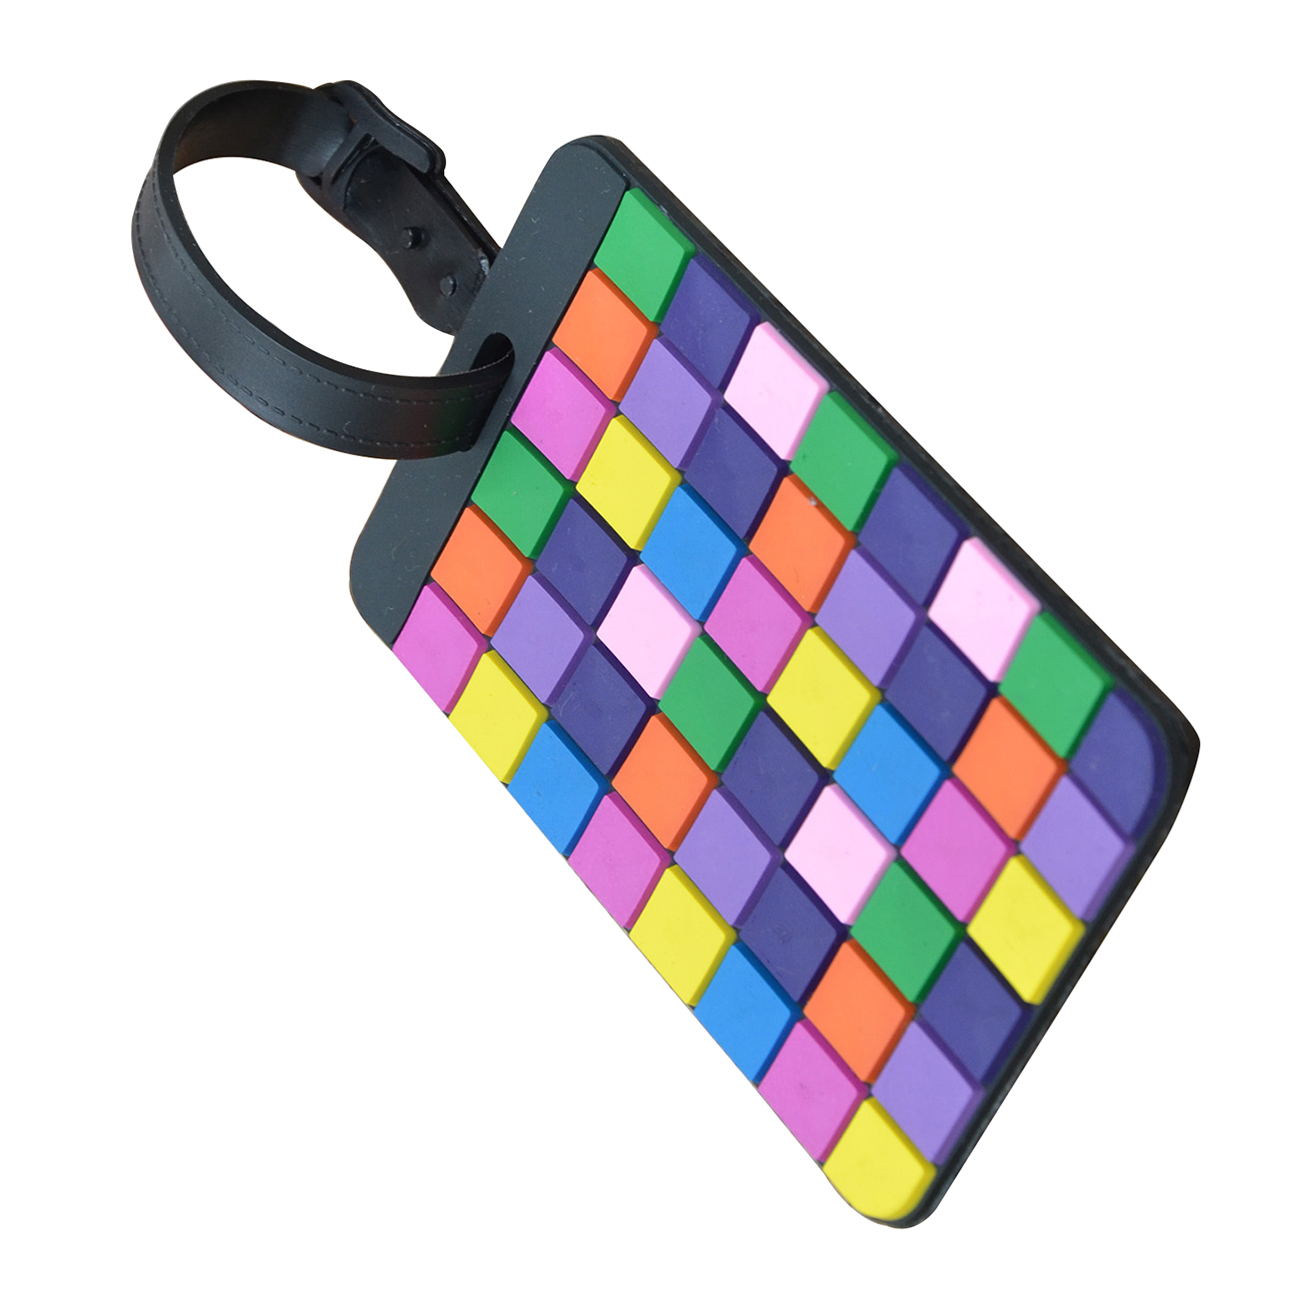 5pcs Boutique Portable Colorful Plaid Secure Travel Suitcase ID Luggage Handbag Large Tag Label (Yellow+Purple)